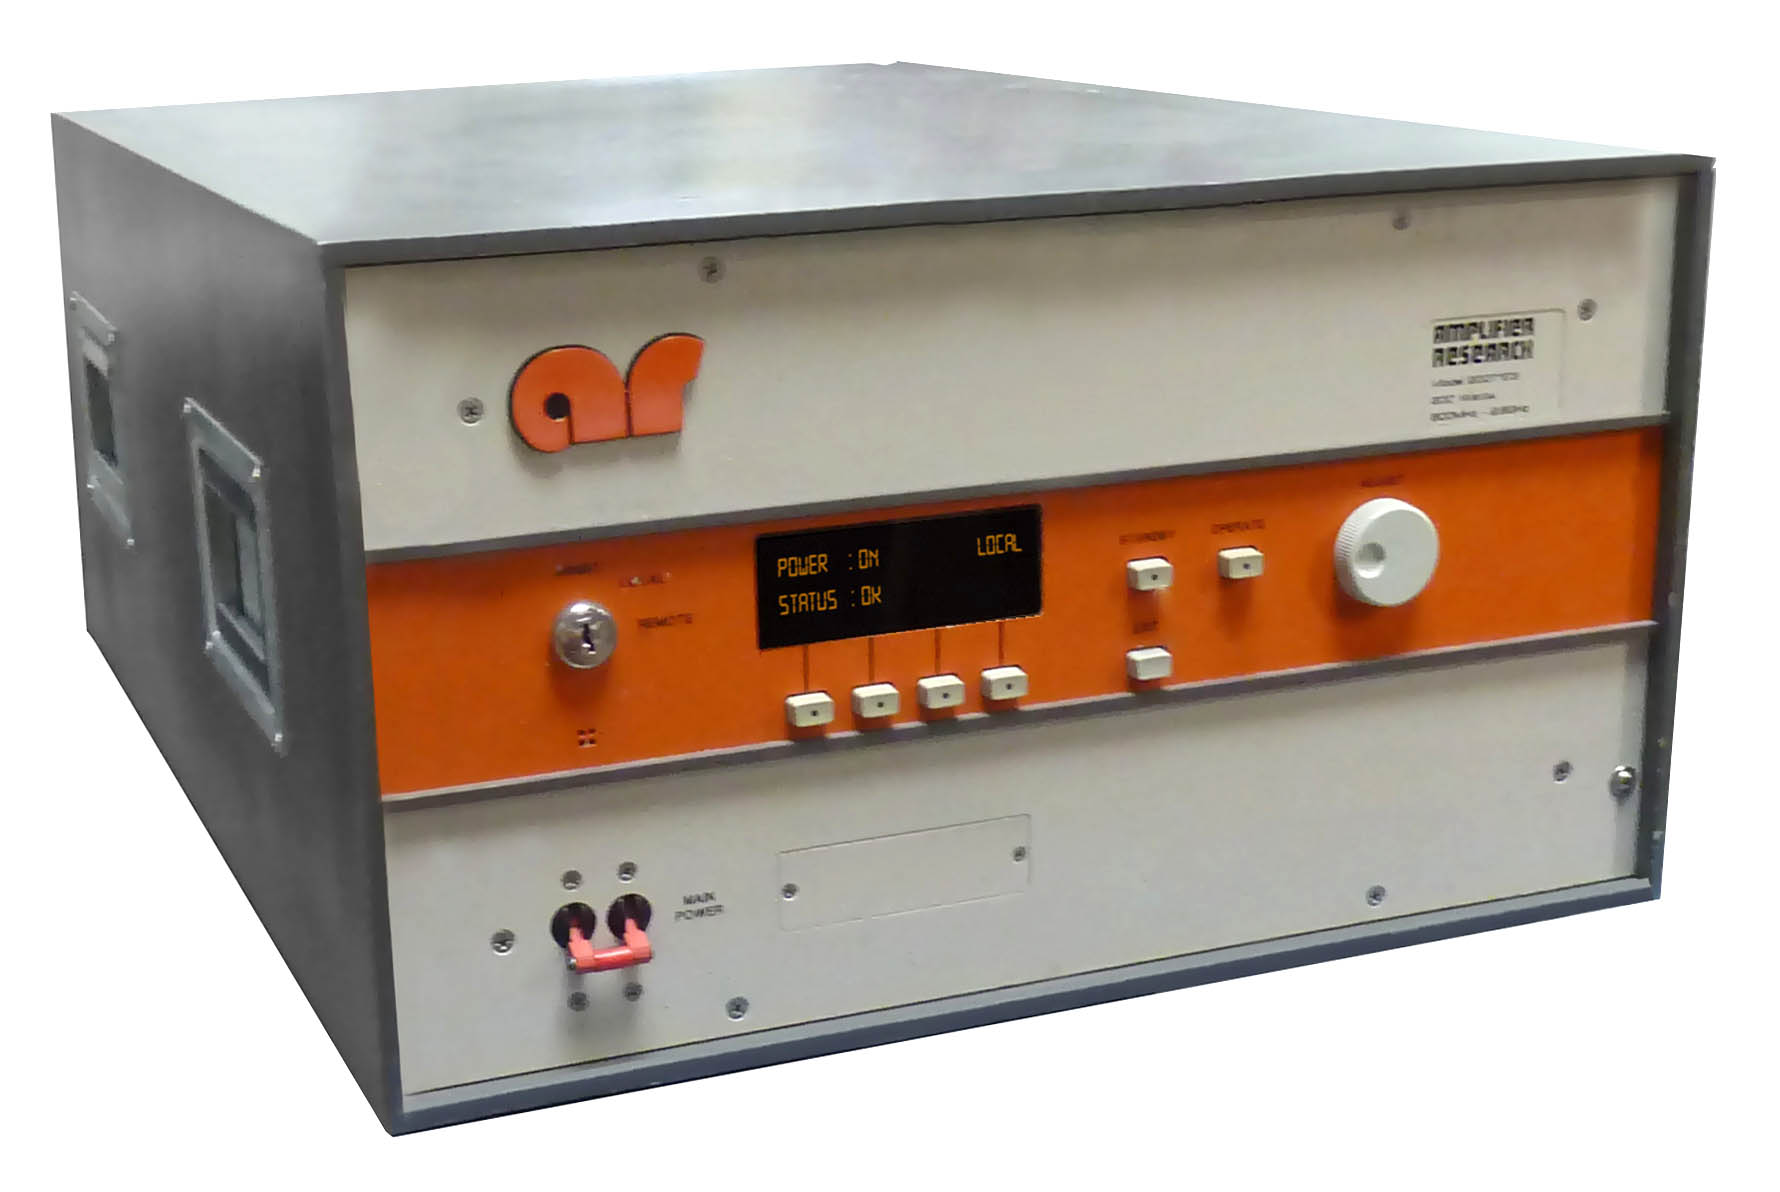 Amplifier Research 200T1G3 TWT Amplifier .8 GHz - 2.8 GHz 200W